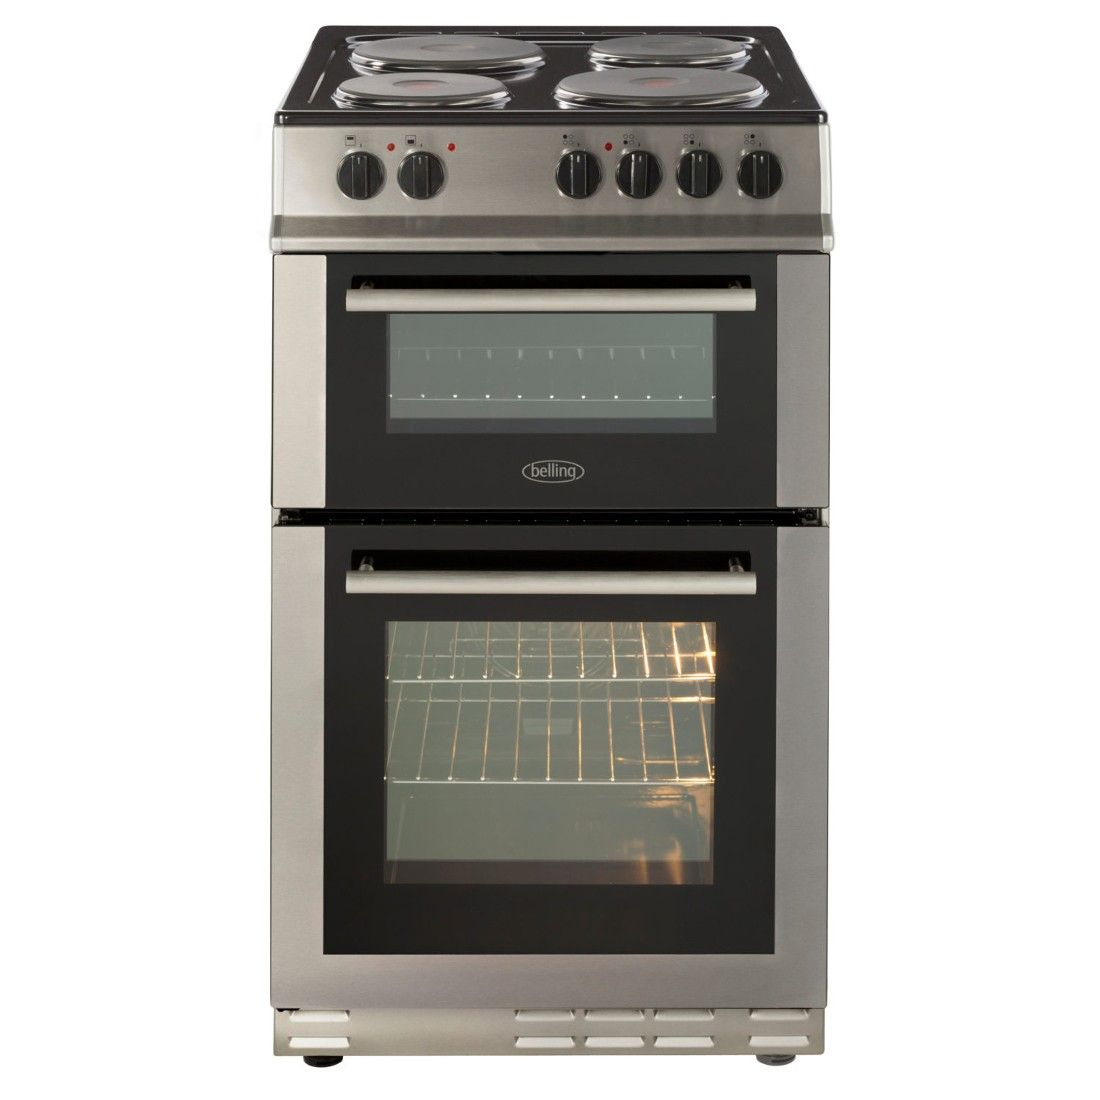 Belling Stainless Steel 50cm Electric Fanned Double Oven Range Cookers